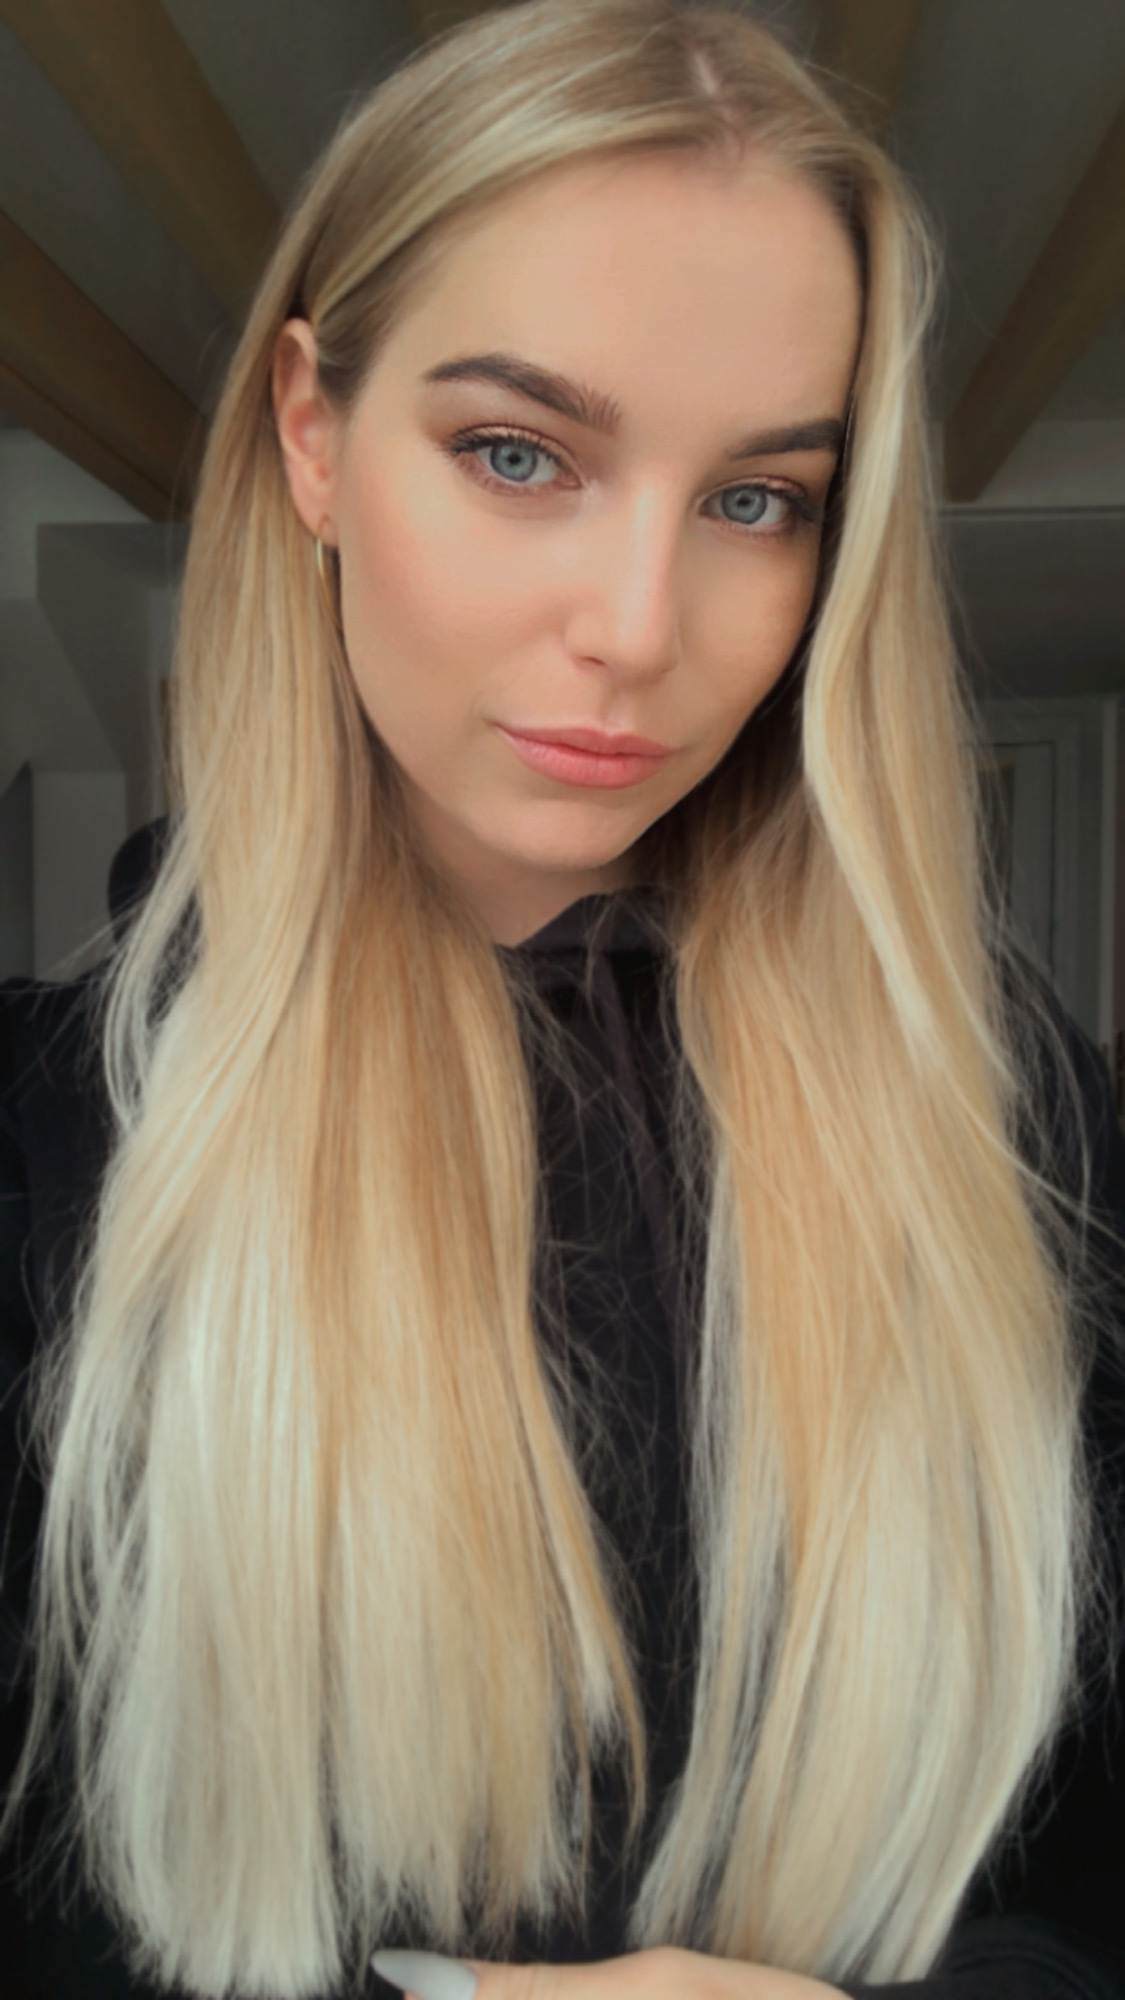 23-year-old, Single From: Prague , Czech Republic , European Countries